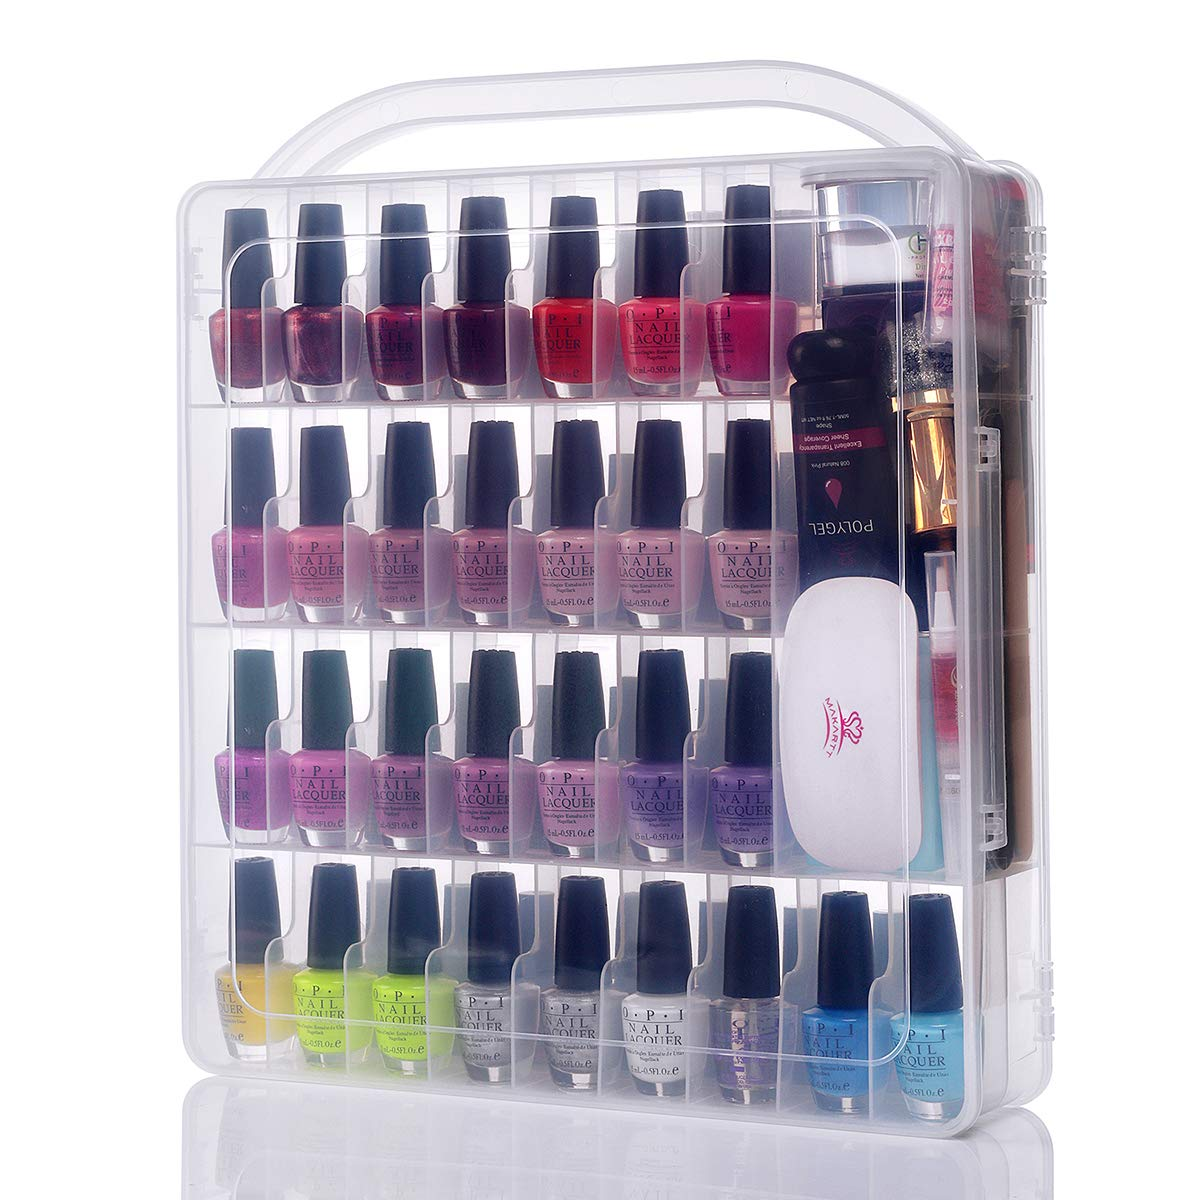 Amazon Com Makartt Large Gel Nail Polish Organizer Poly Nail Extension Gel Nail Tools Holder For 60 Bottles With Large Separate Compartment For Manicure Tools See Through Universal Nail Polish Case N 03